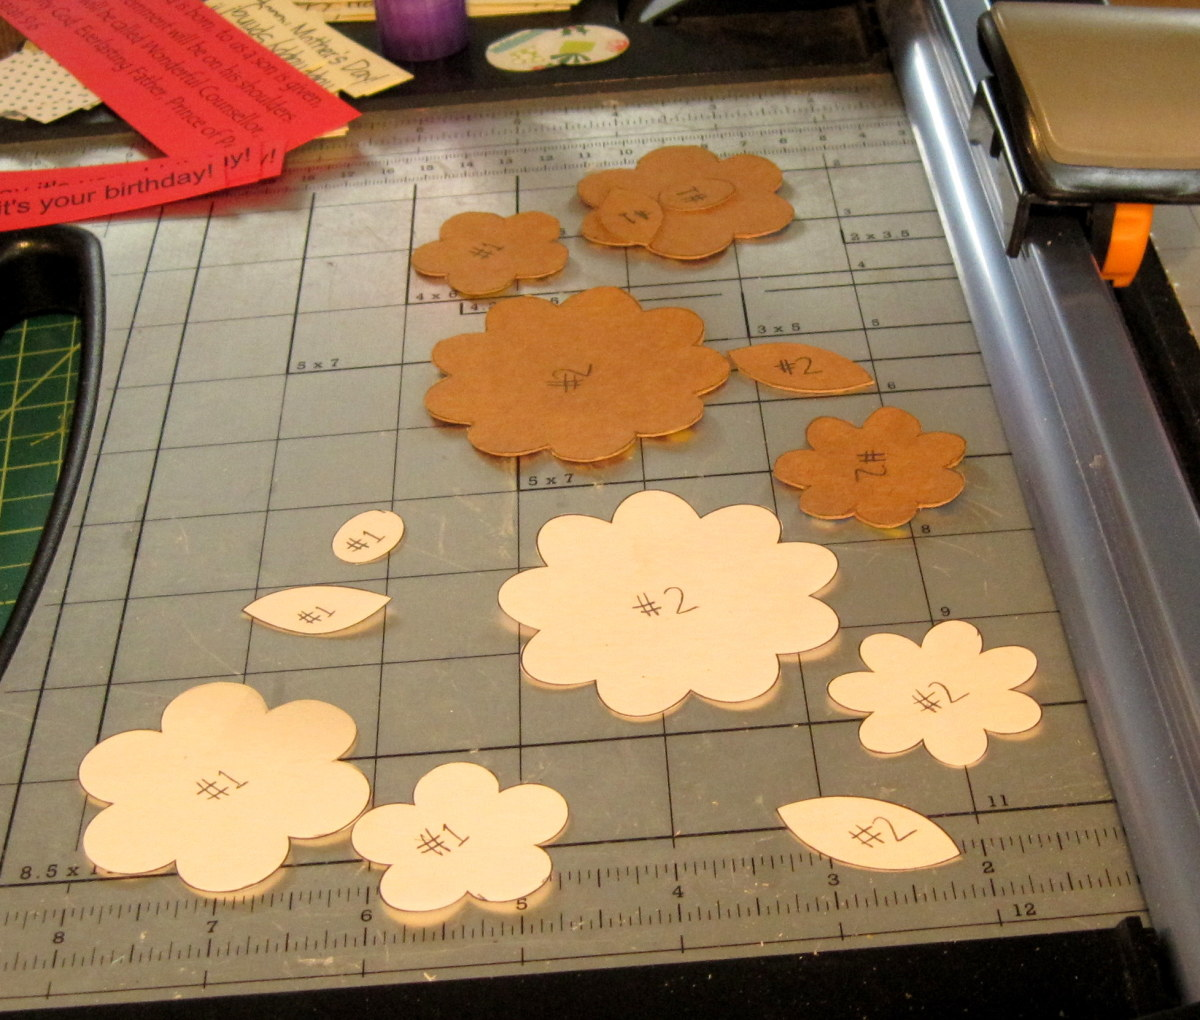 I labeled my two piece flowers with numbers so I would remember which pieces go together.